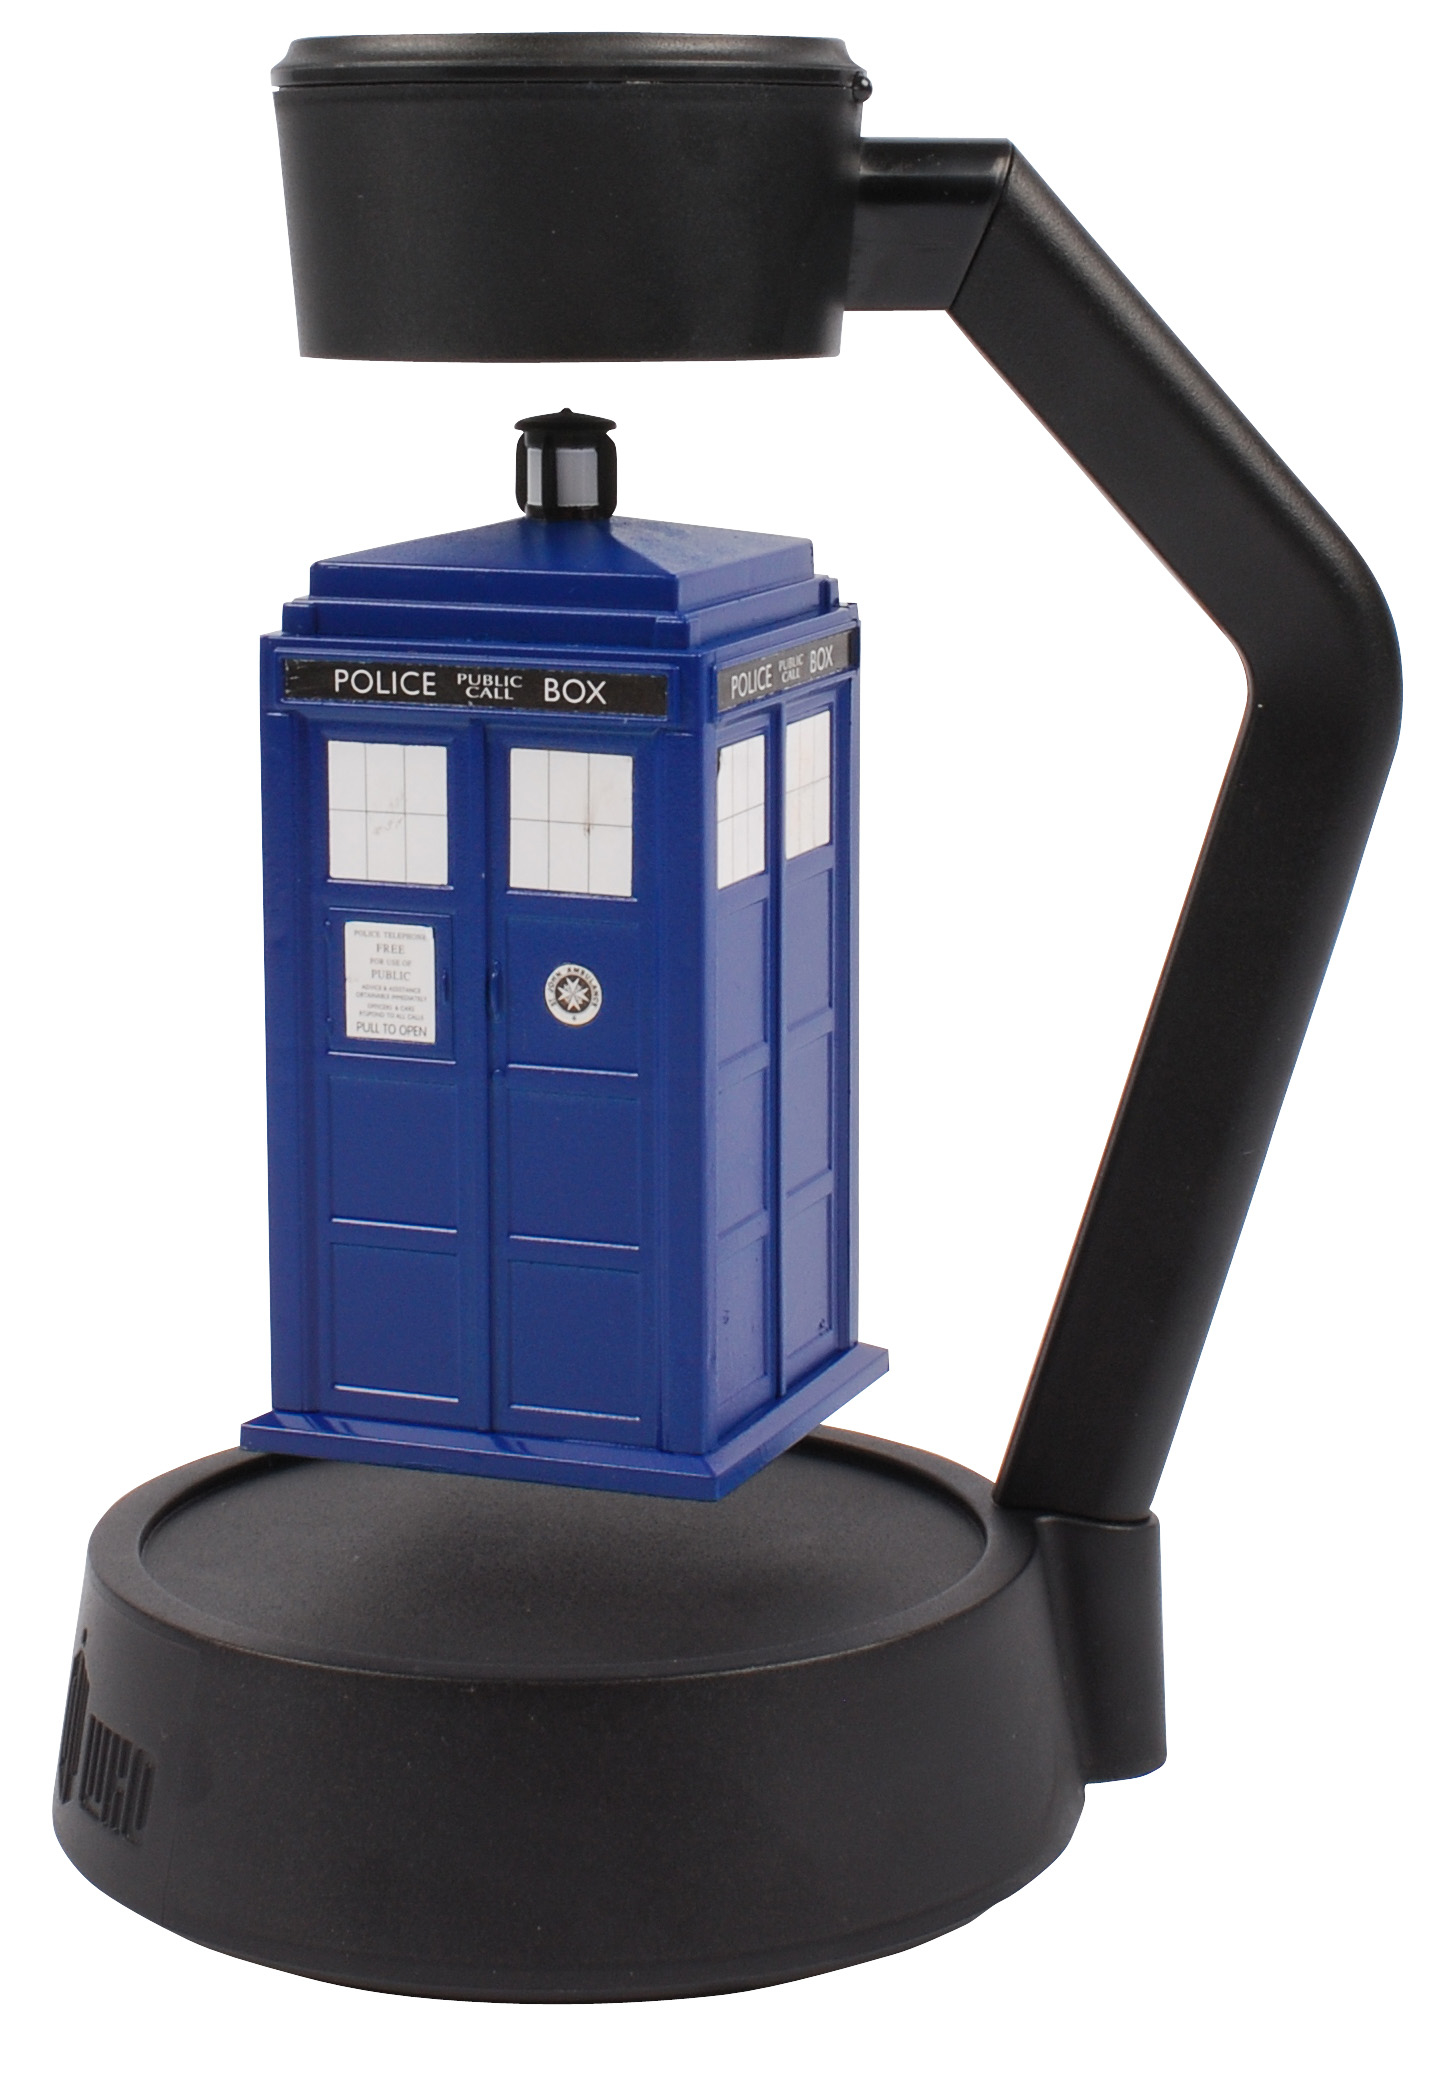 DOCTOR WHO LEVITATING TIMELORDS SPINNING TARDIS